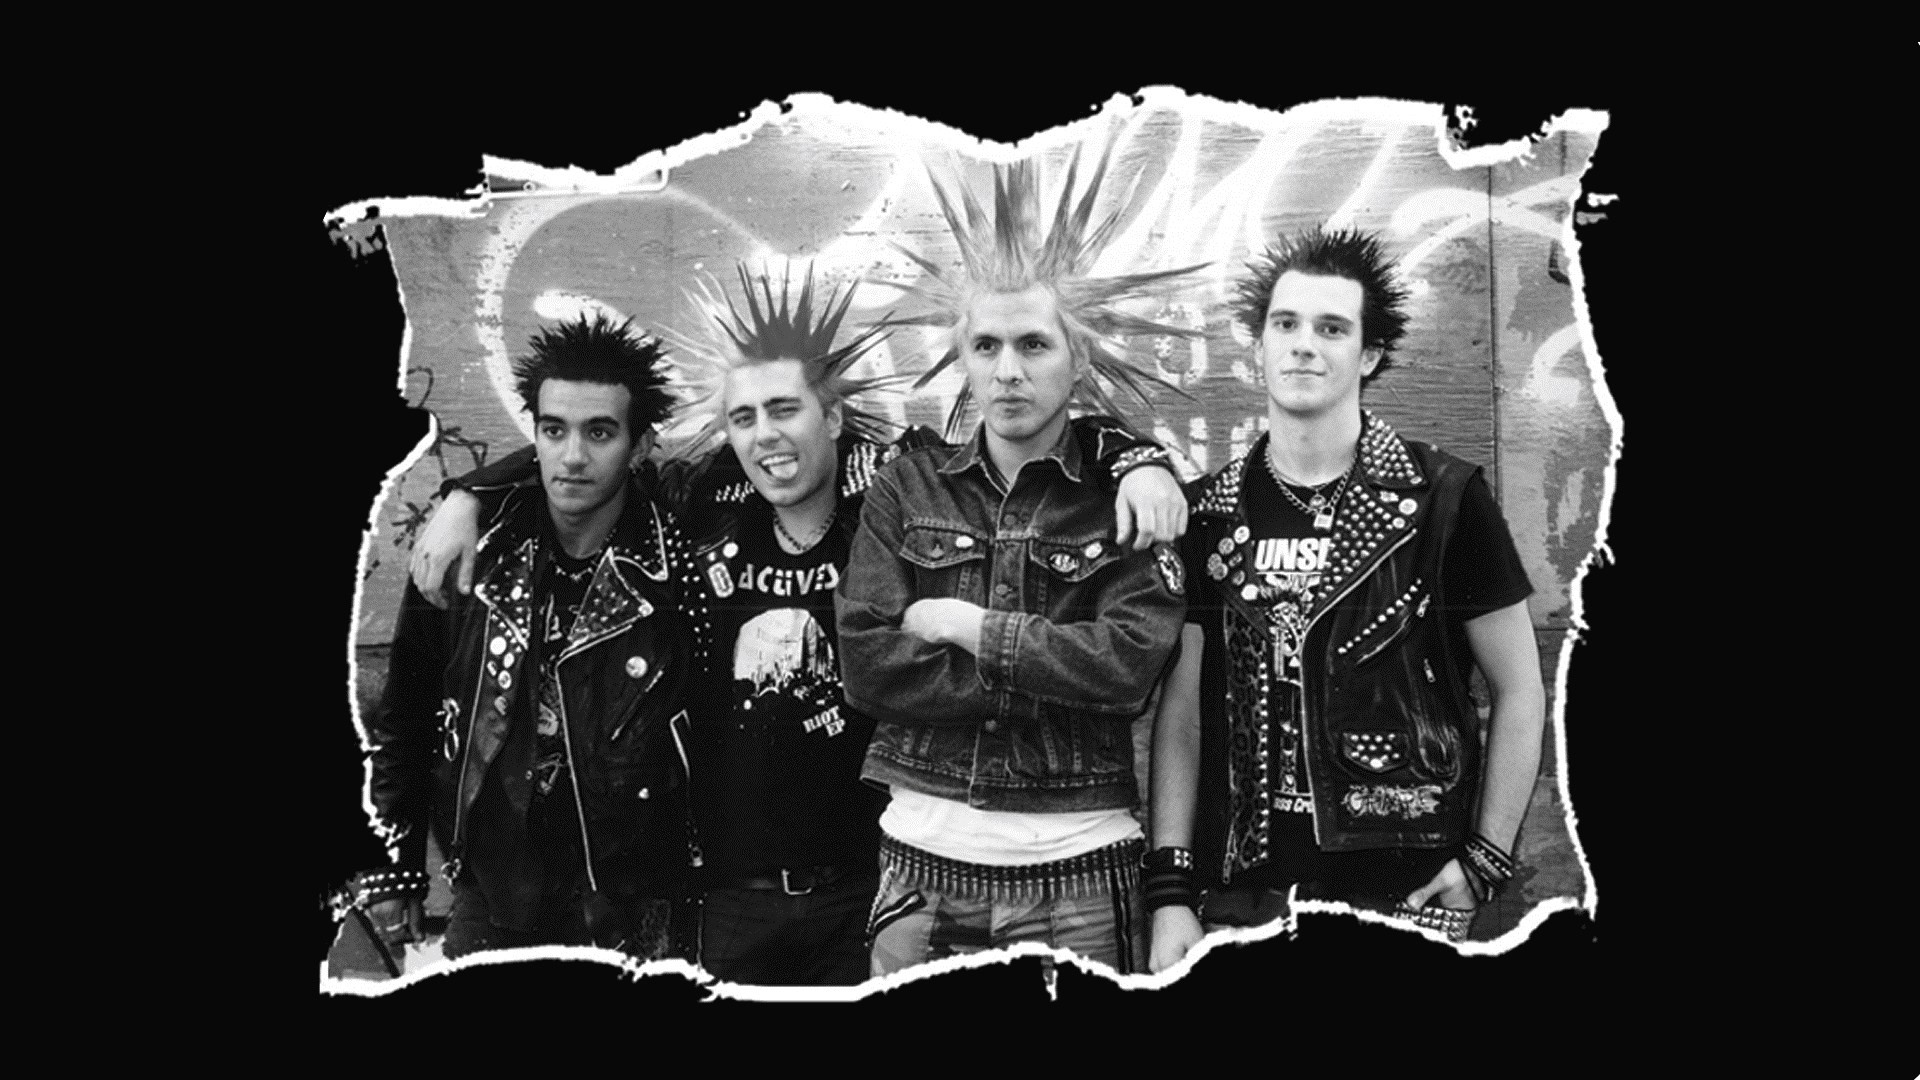 Pictures of punk rock wallpapers 57 images - Wallpapers punk ...